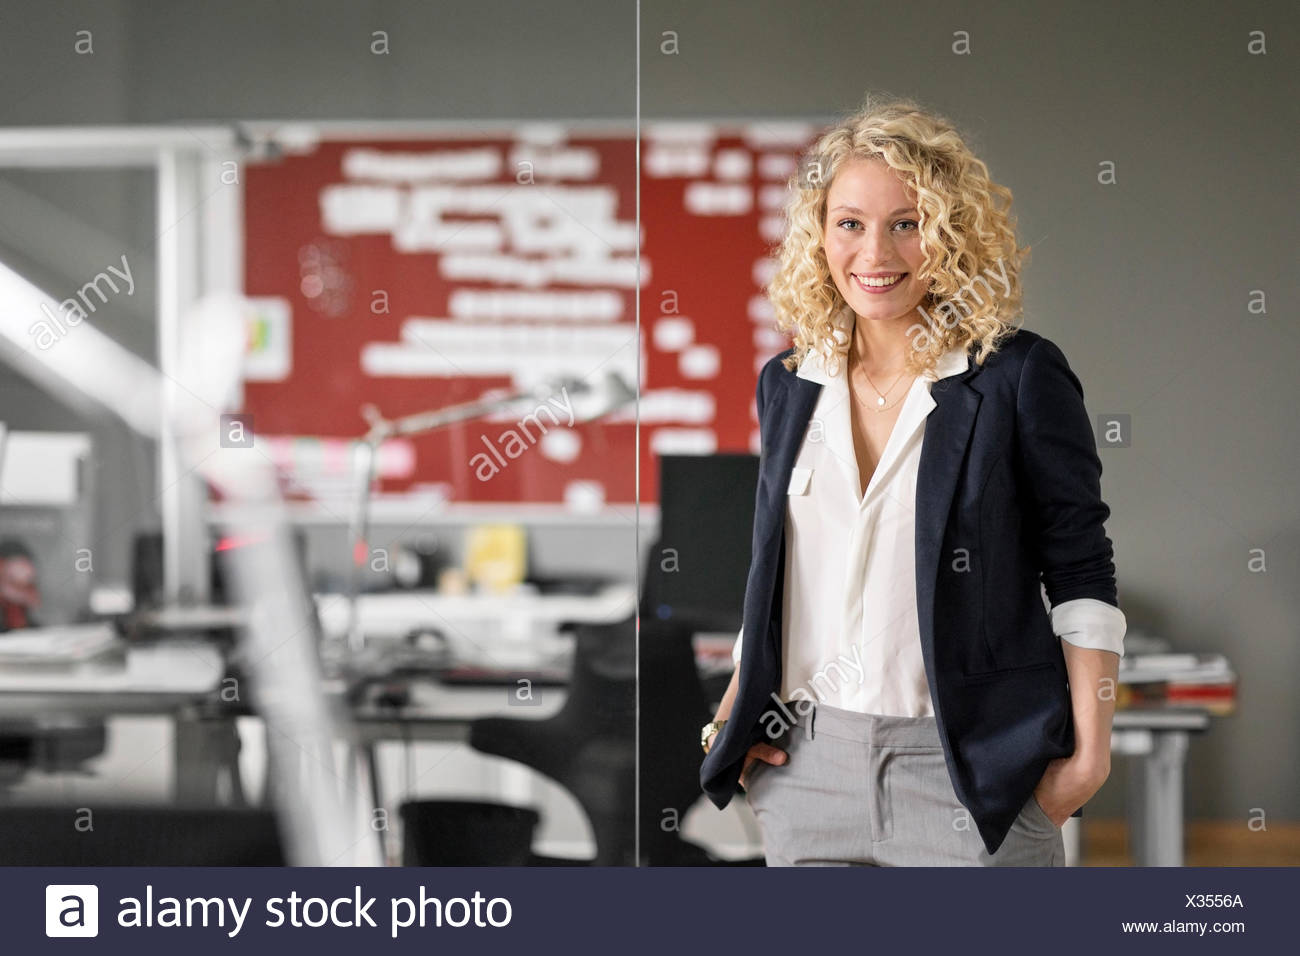 Dynamic businesswoman standing in office, smiling - Stock Image